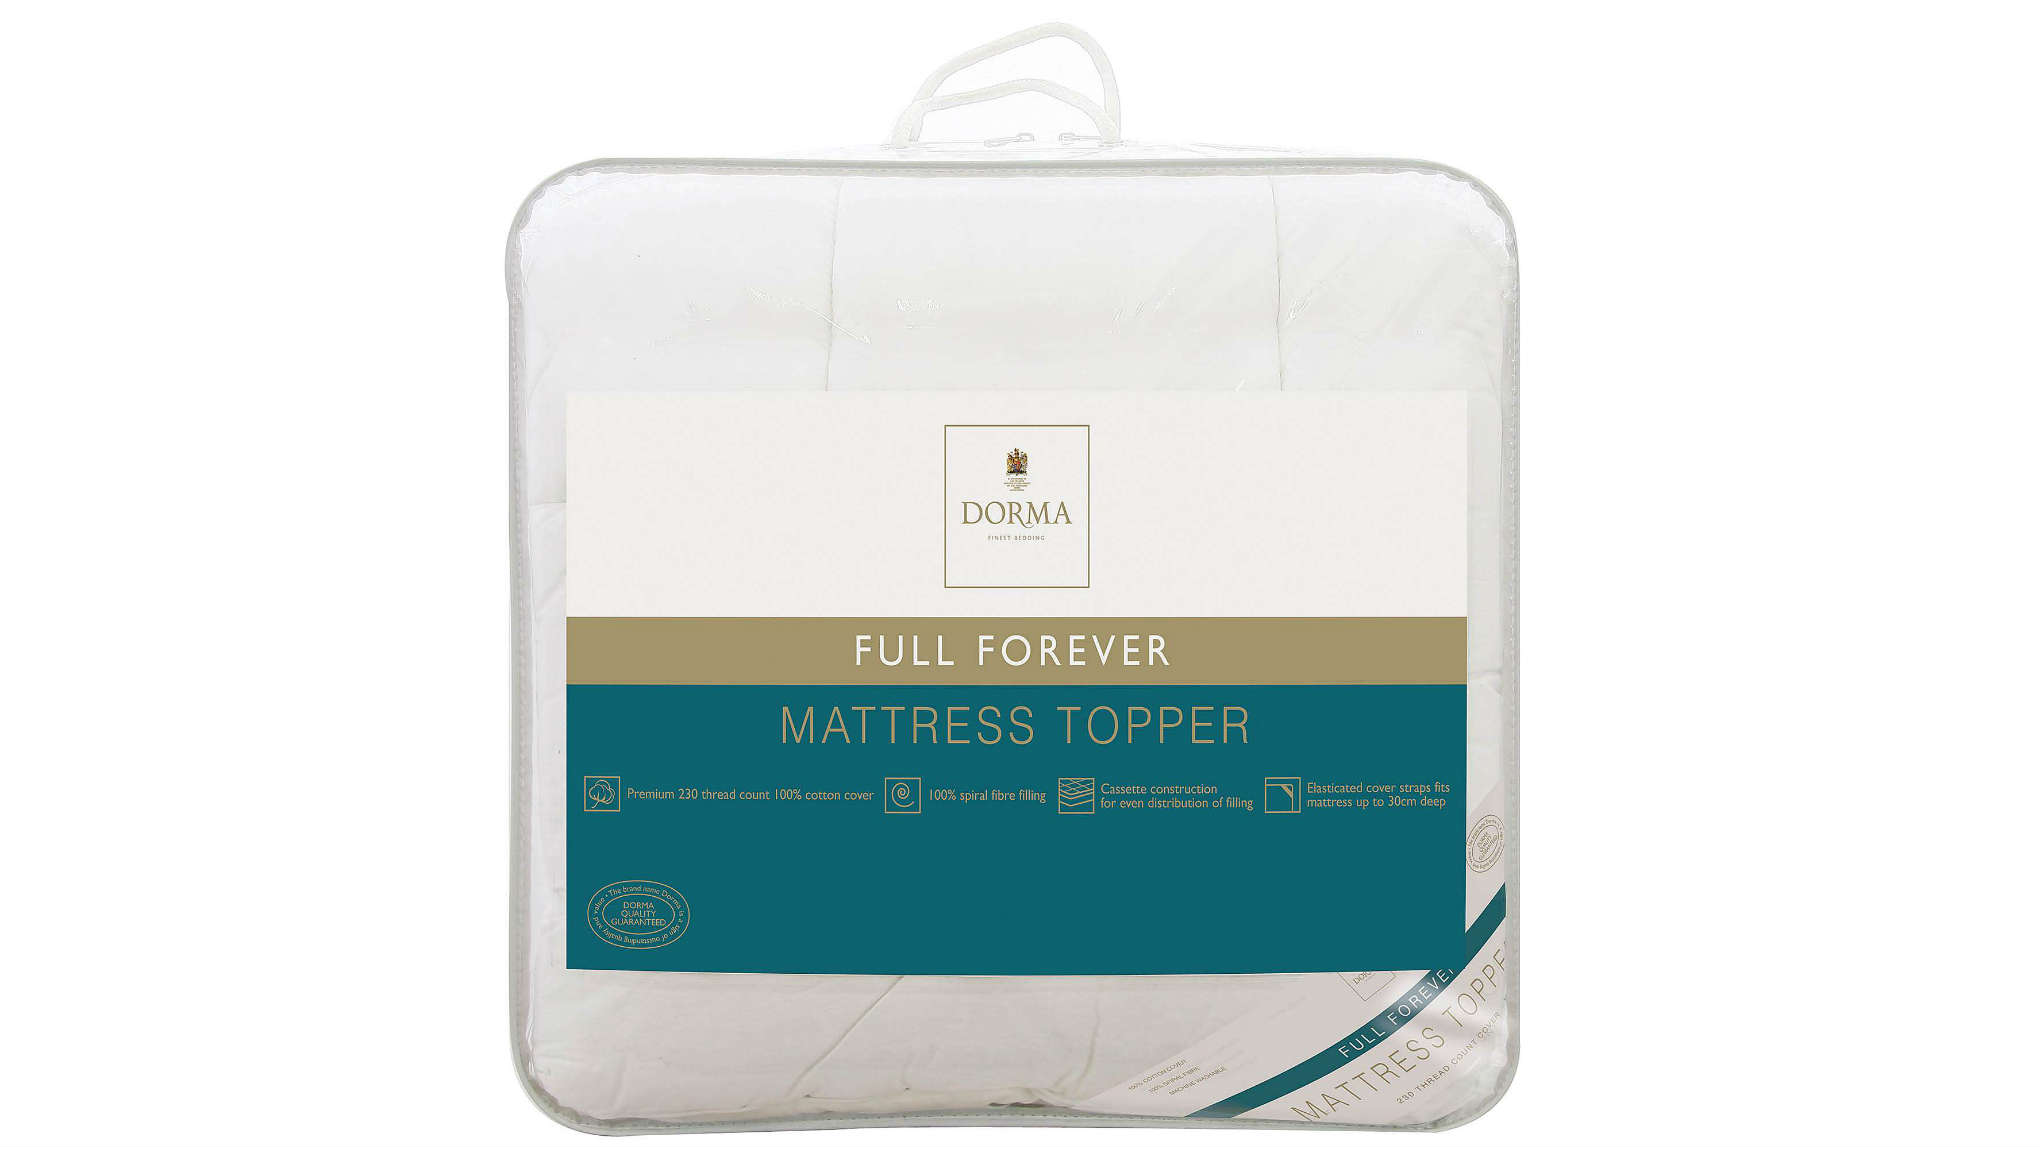 itu0027s nighon impossible to find a decent mattress topper for under fifty quid but this topper is the exception to the rule ticking more boxes for us than